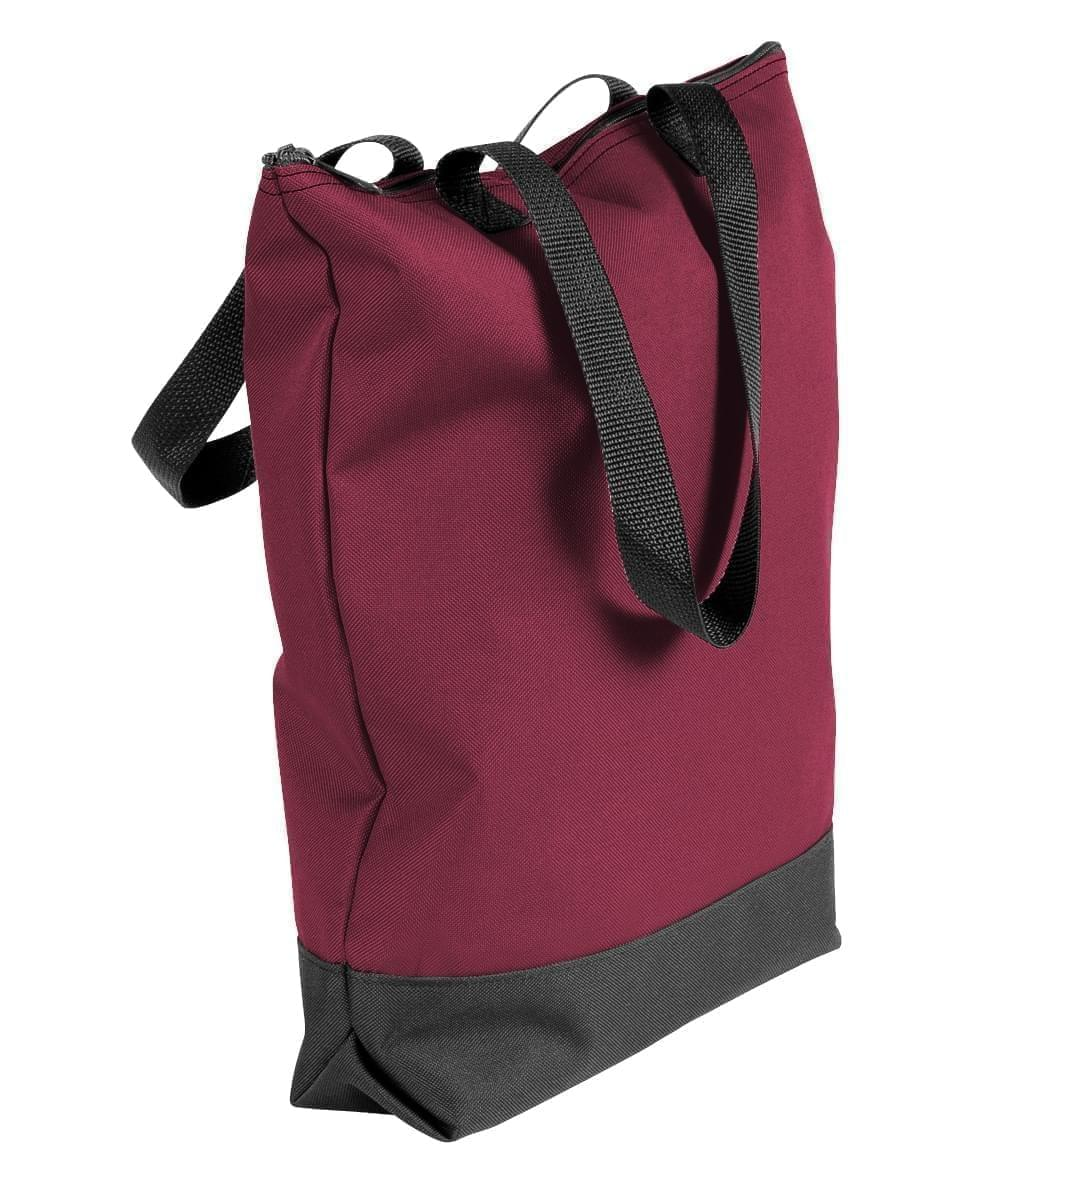 USA Made Poly Notebook Tote Bags, Burgundy-Black, 1AAMX1UAQR